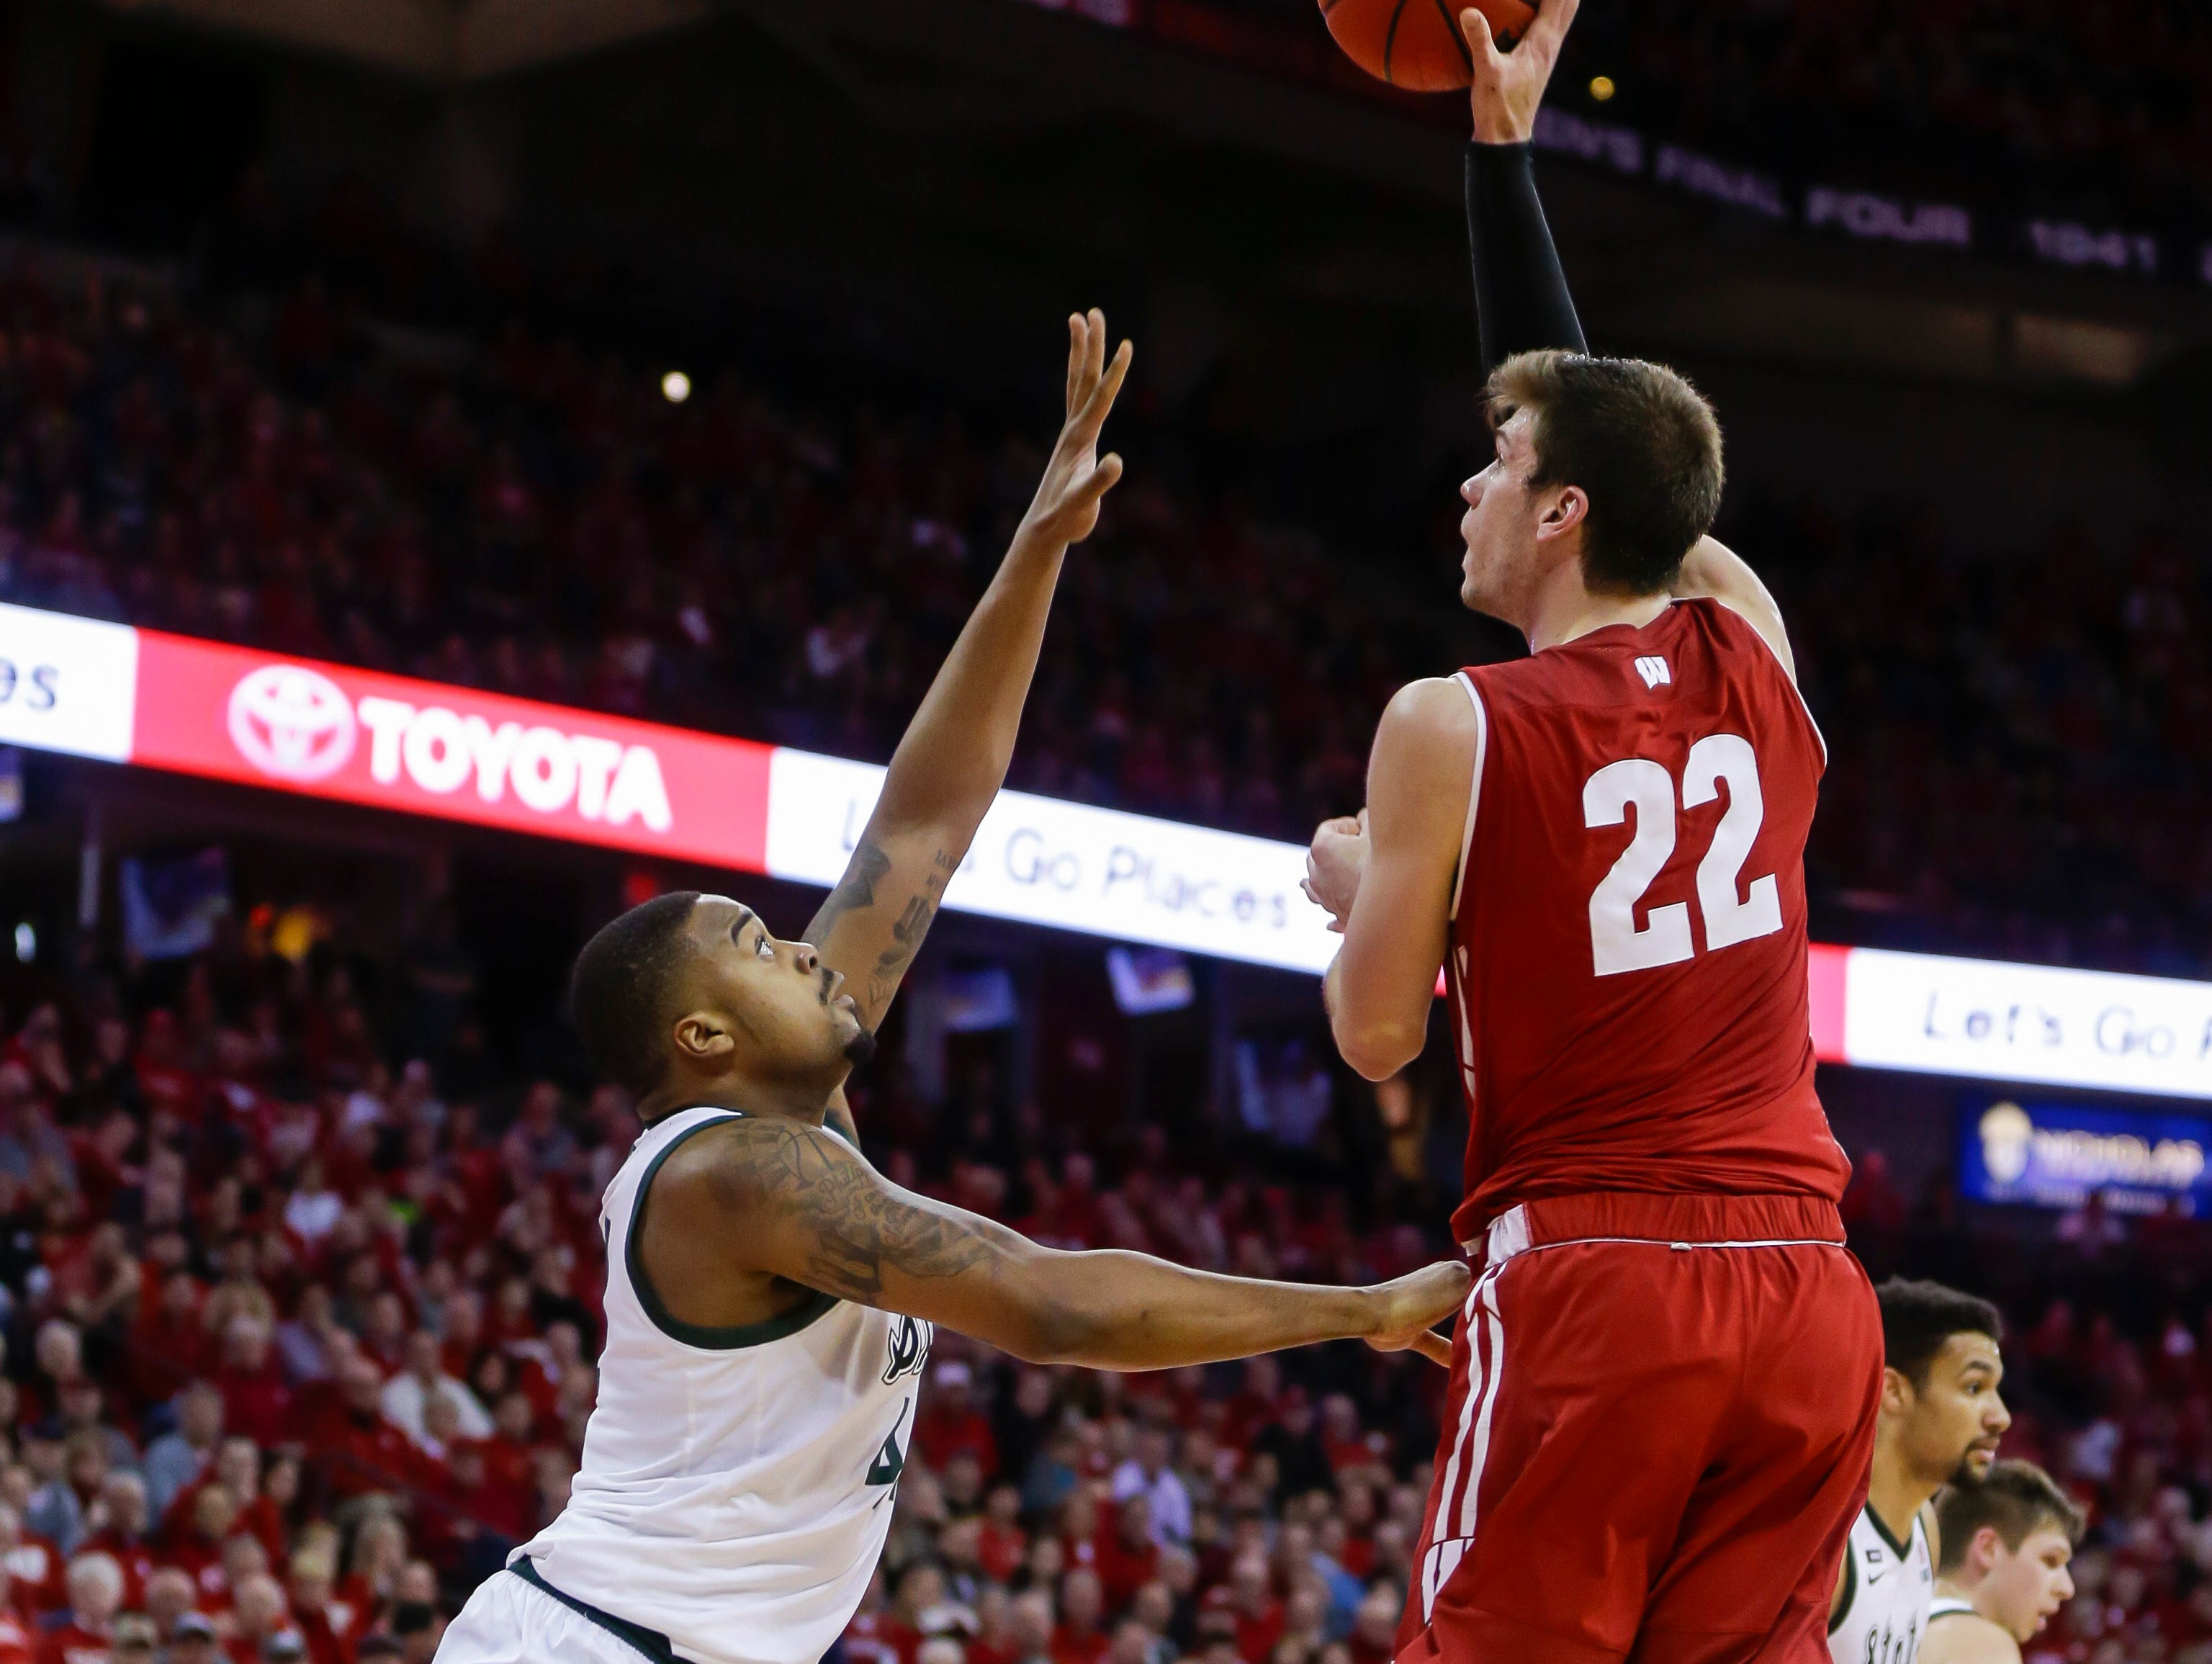 Wisconsin's Ethan Happ (22) shoots for his 2,000th career point during the second half of the team's NCAA college basketball game against Michigan State on Tuesday, Feb. 12, 2019, in Madison, Wis. Michigan State won 67-59.